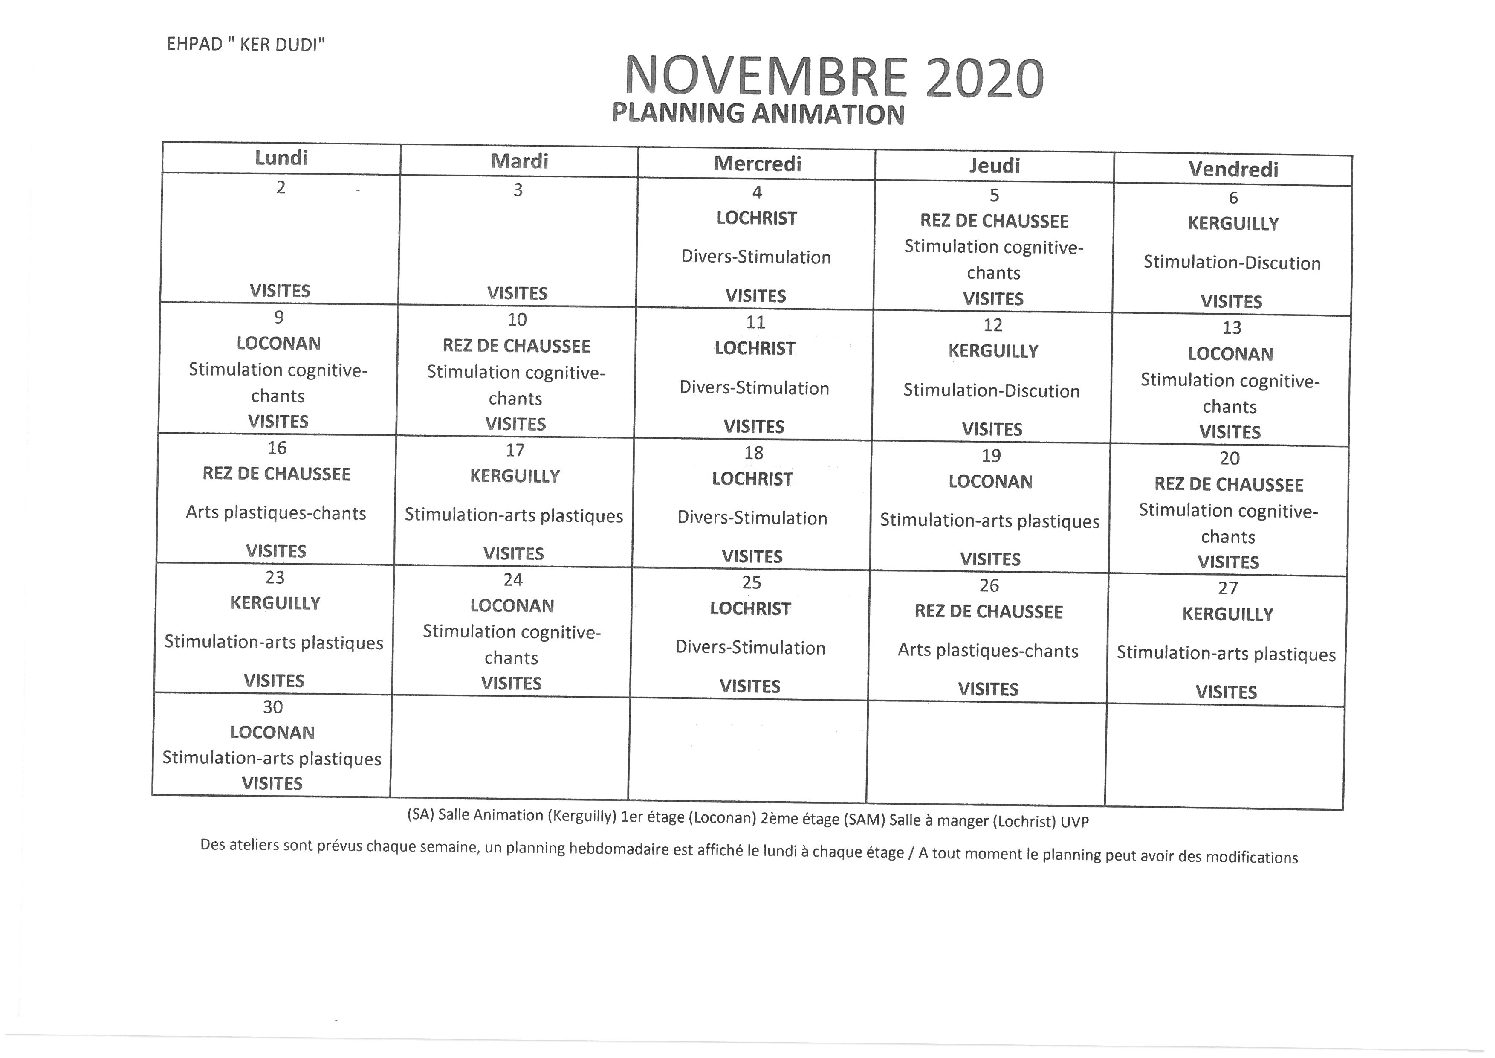 Planning Animations Novembre 2020